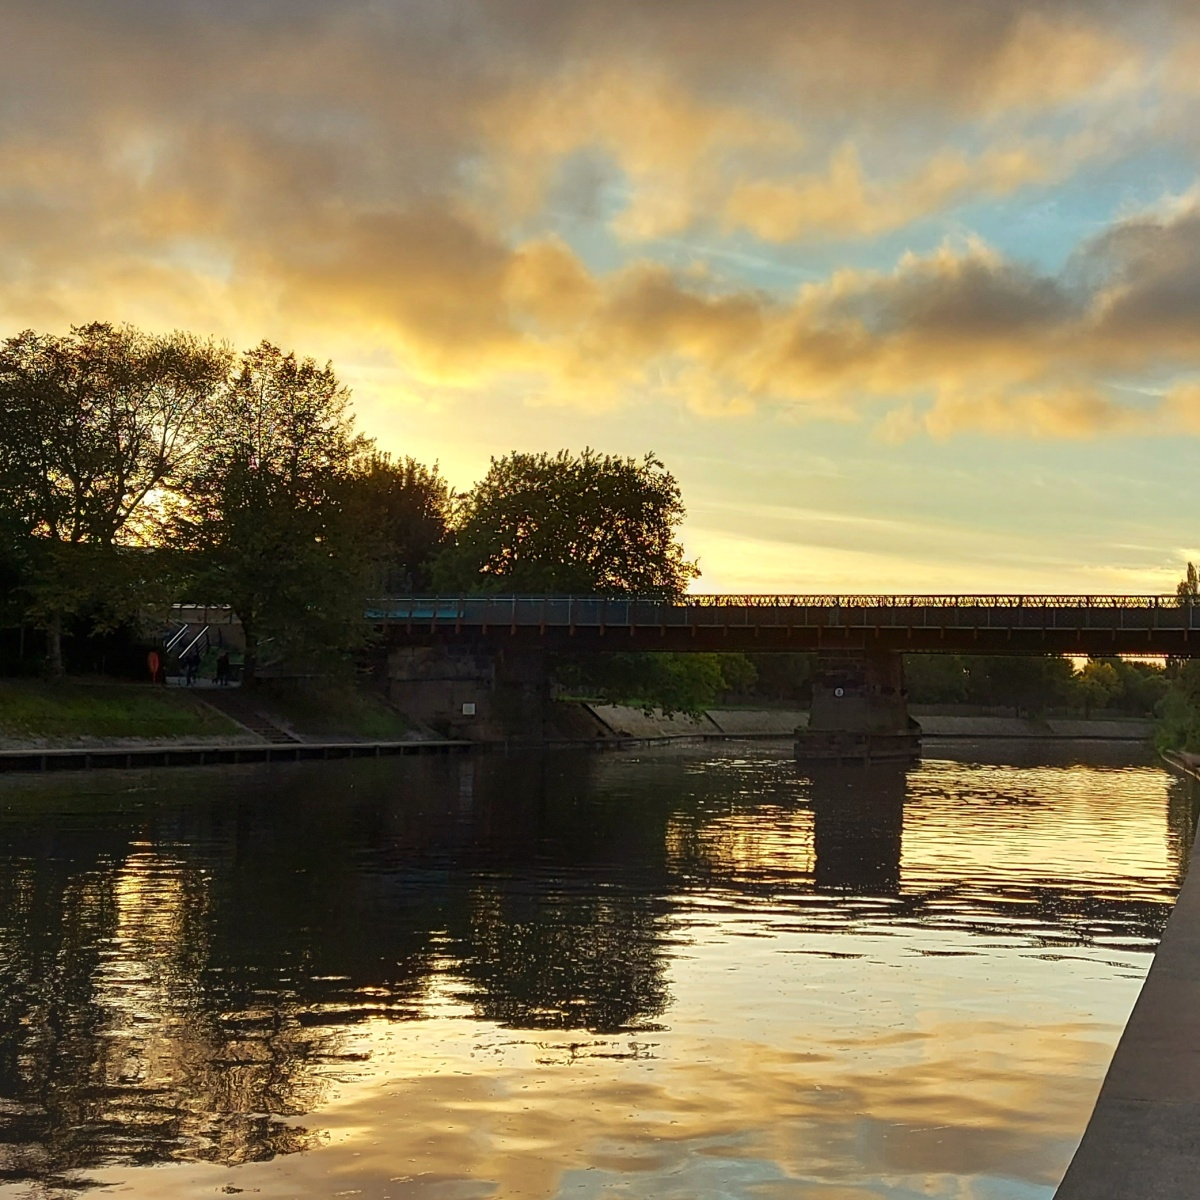 River Ouse, York, UK, October 2020